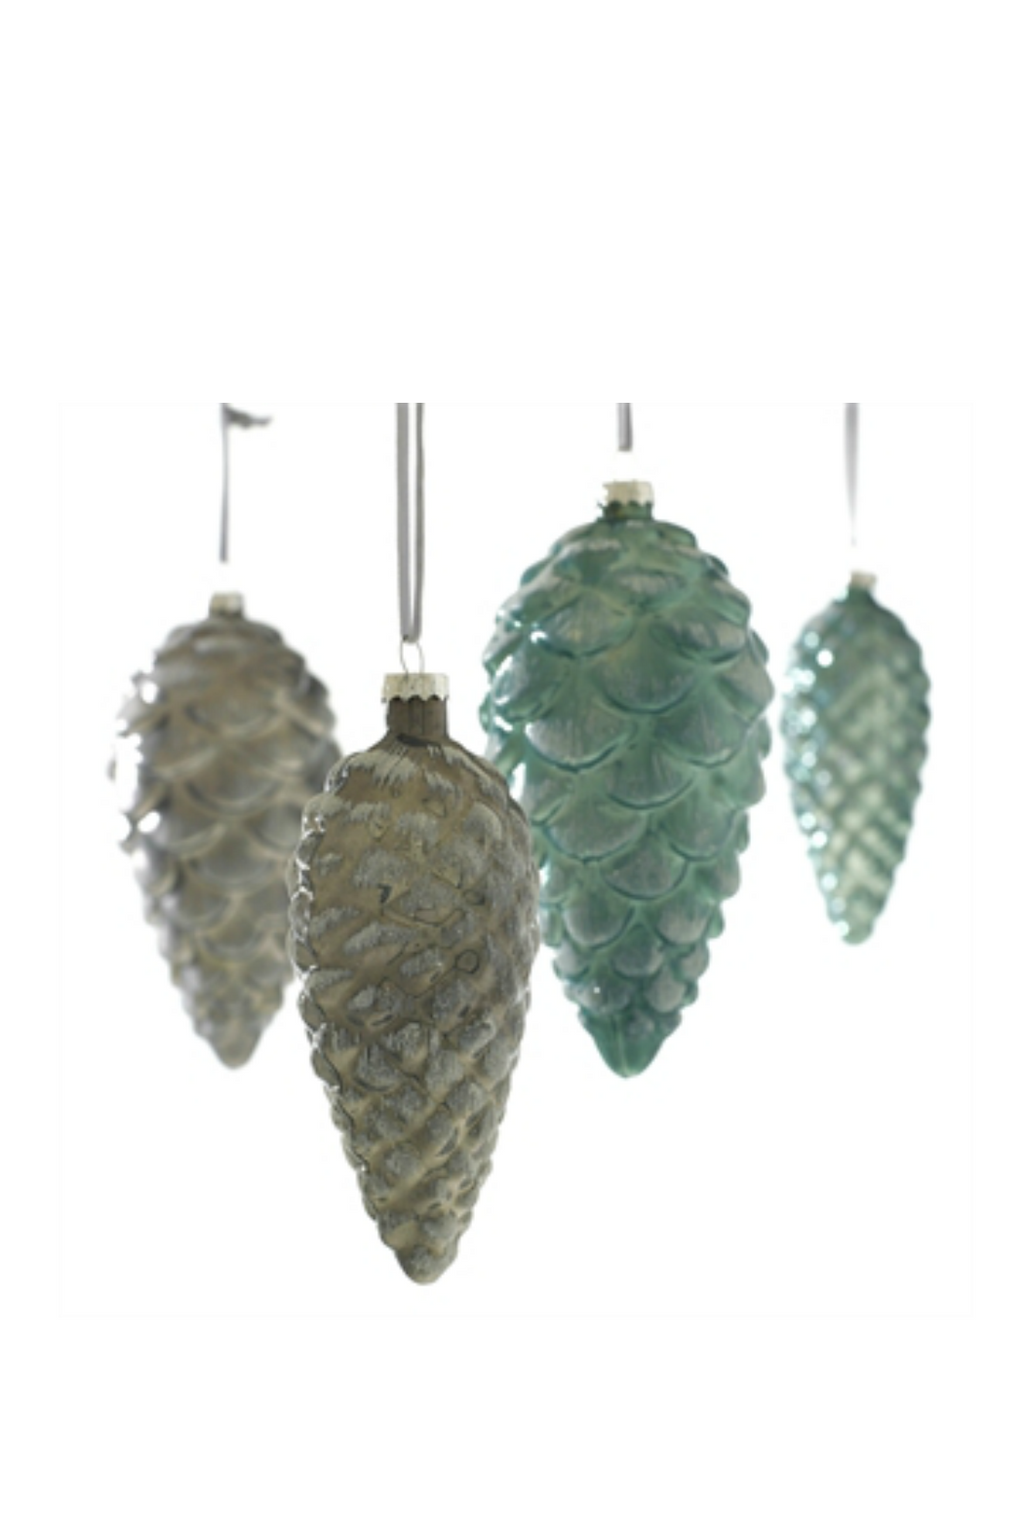 Accent Decor Glass Iced Pinecone Ornament